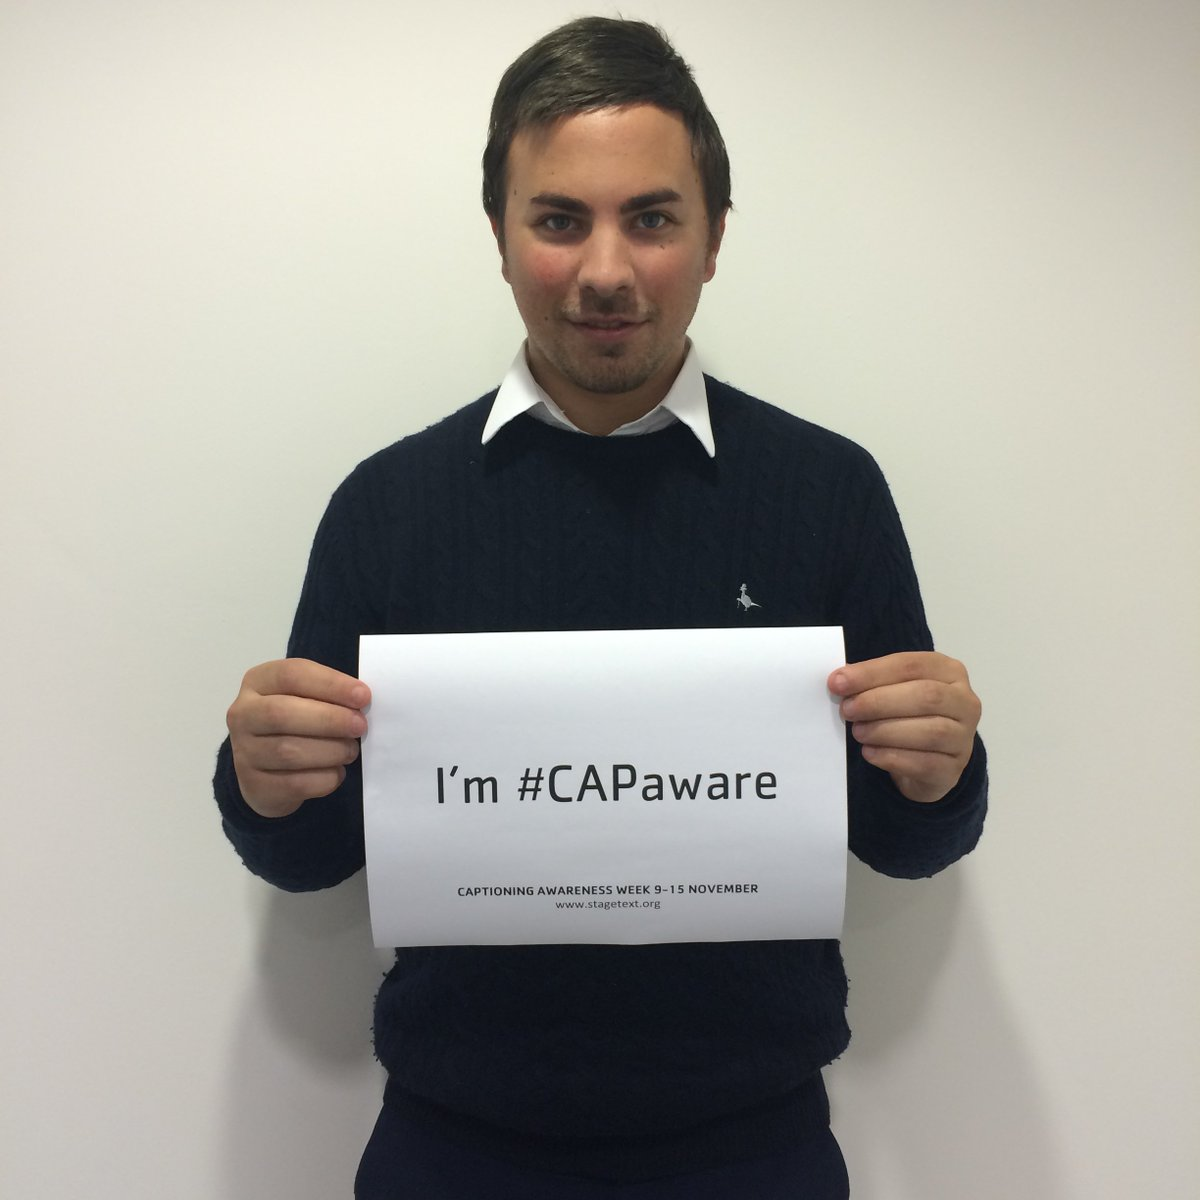 DT's favourite monochrome dresser @LukeFlanagan88 is #CAPaware and he knows it. https://t.co/Tn8diq2U6c